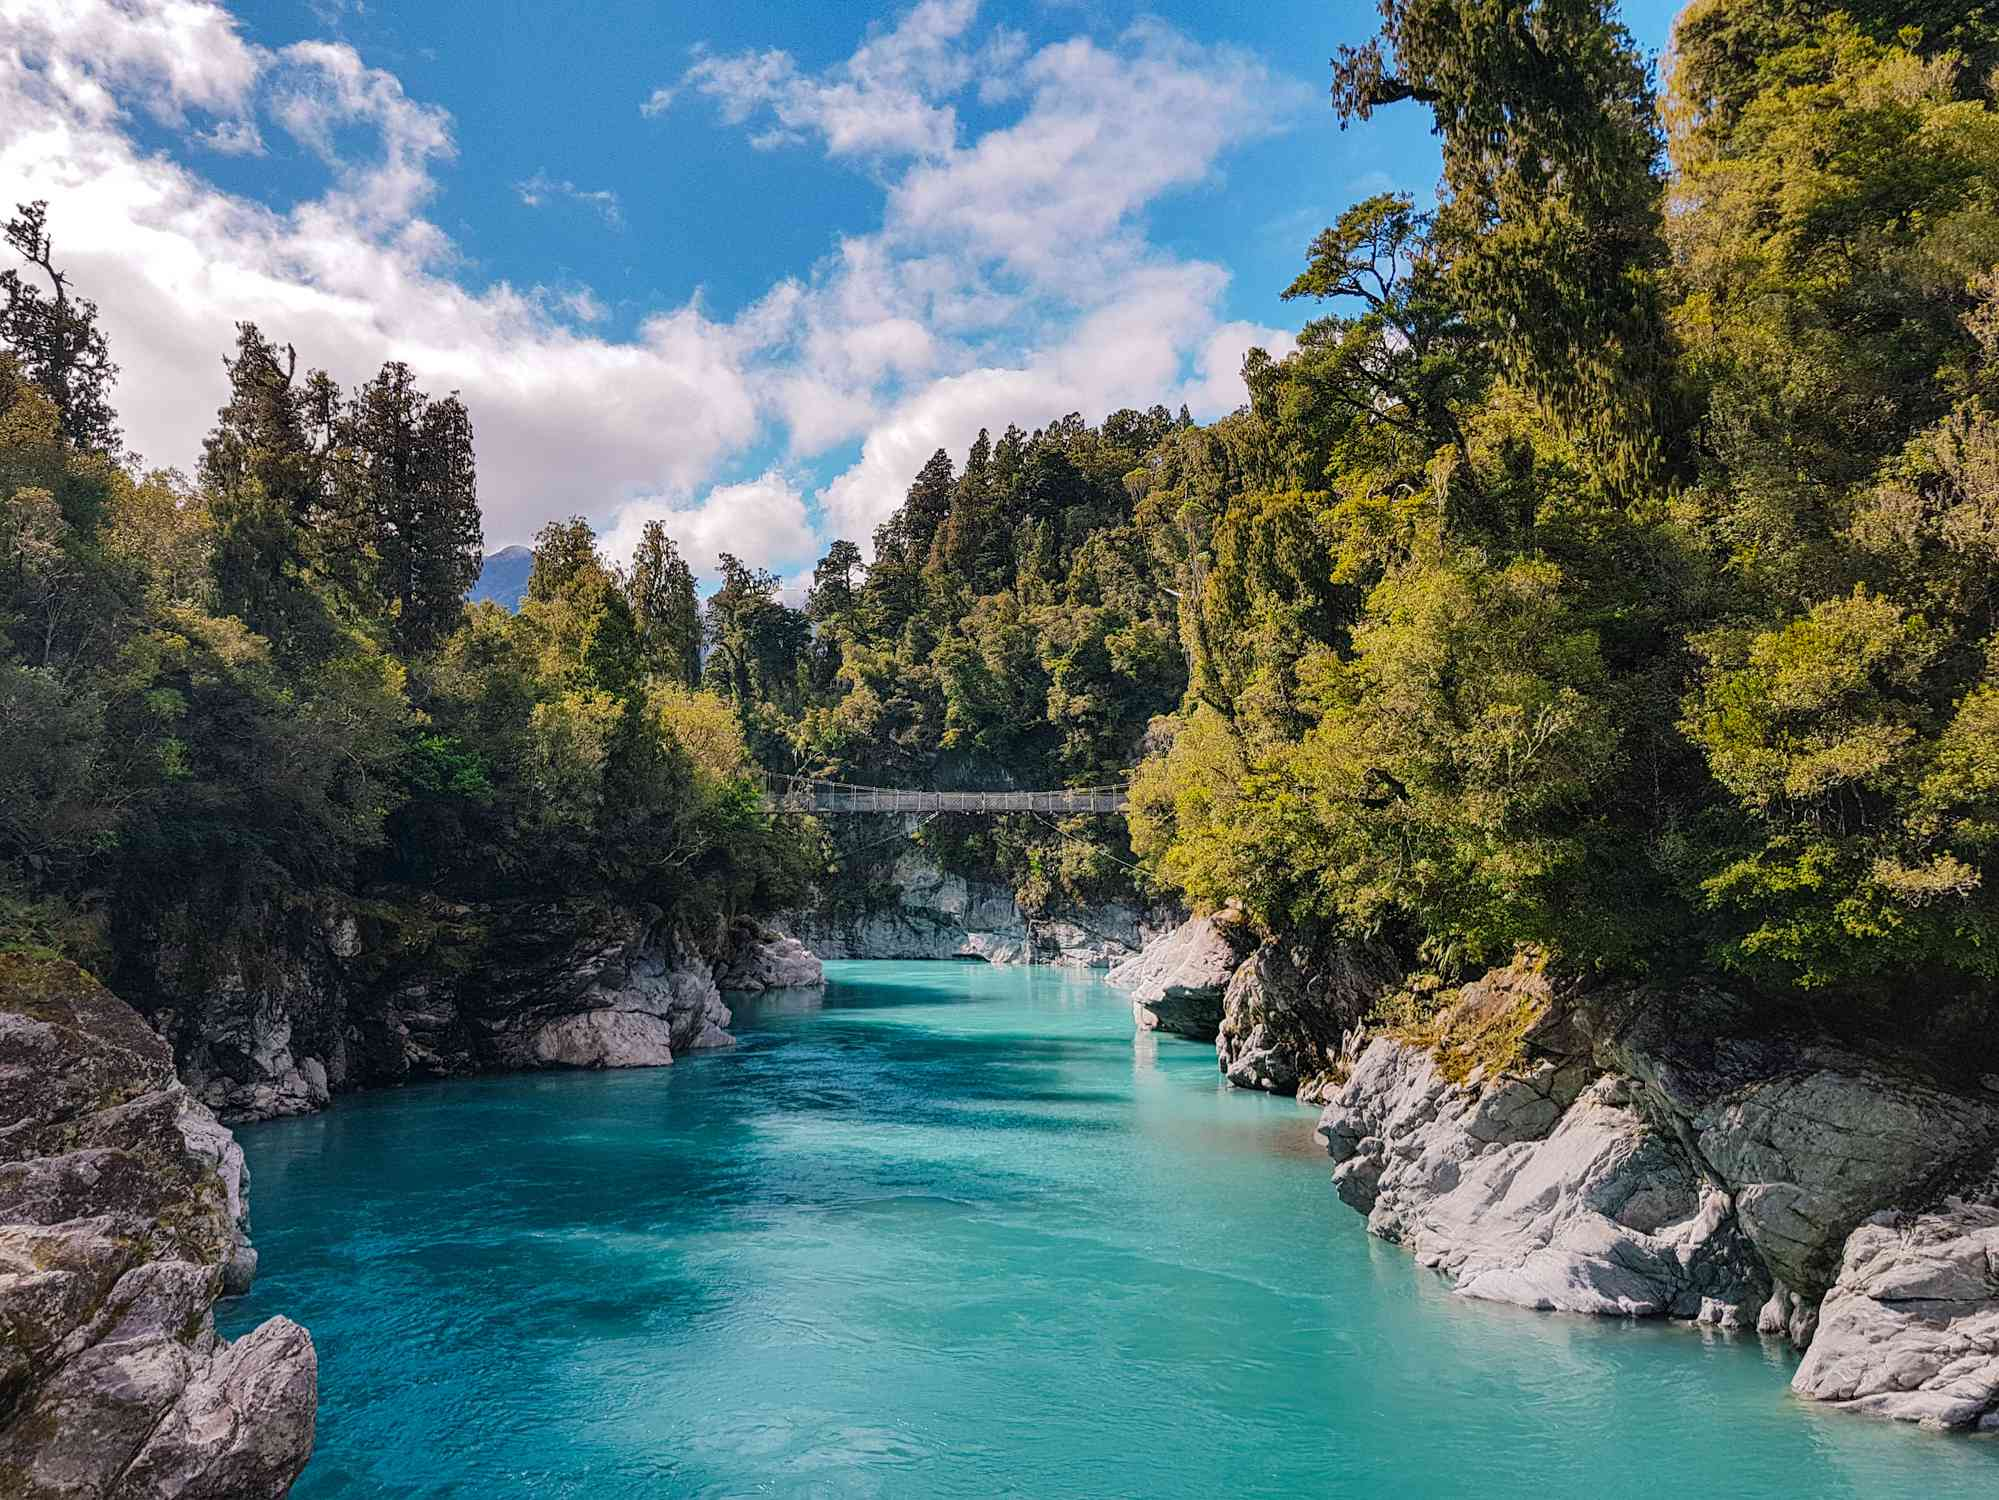 turquoise river surrounded by rocks and trees with a swing bridge in distance